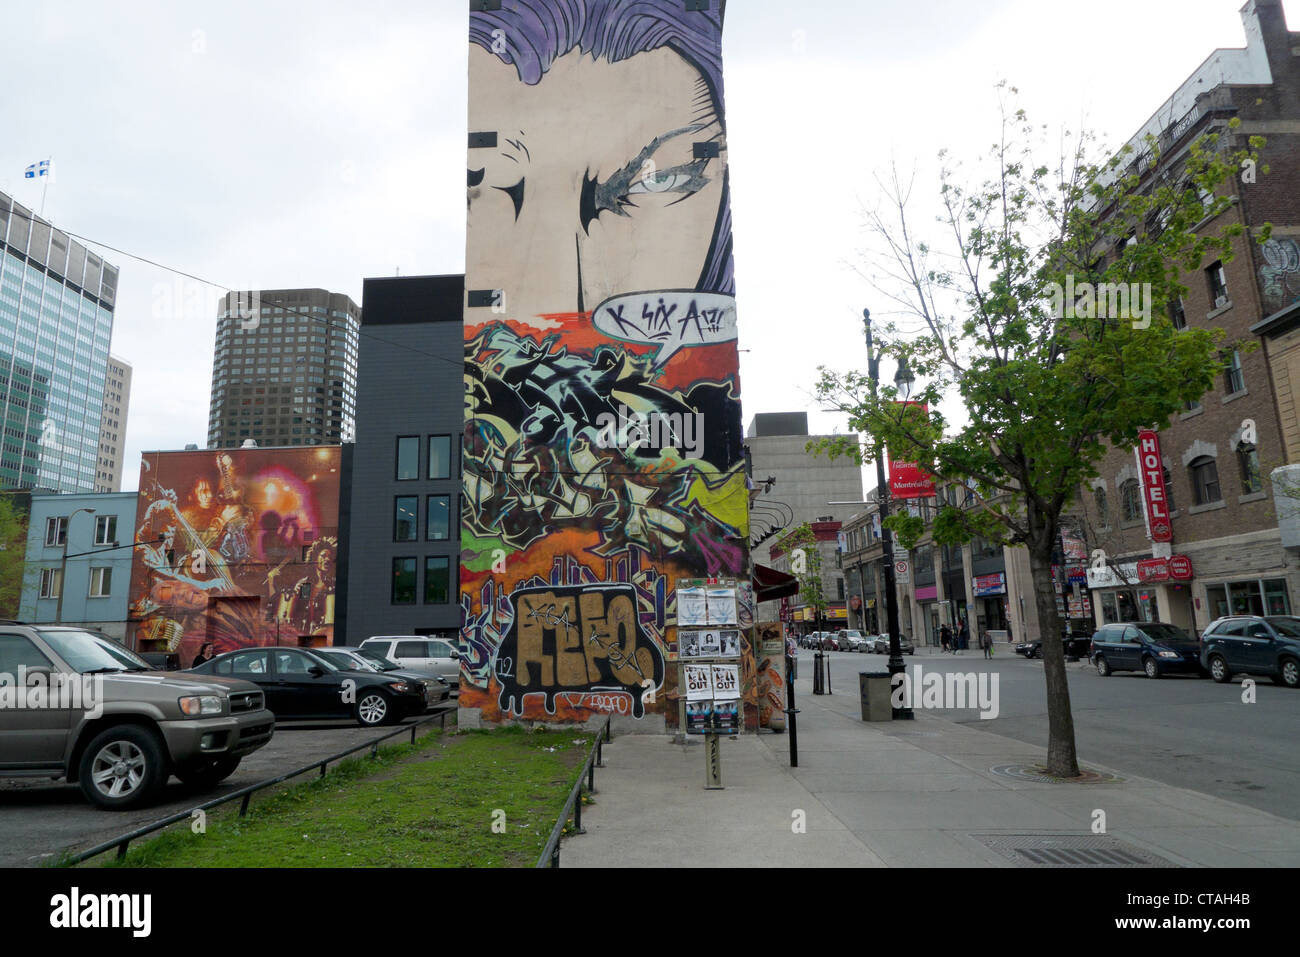 wall mural of comic book character covering building st catherine stock photo wall mural of comic book character covering building st catherine street montreal quebec canada